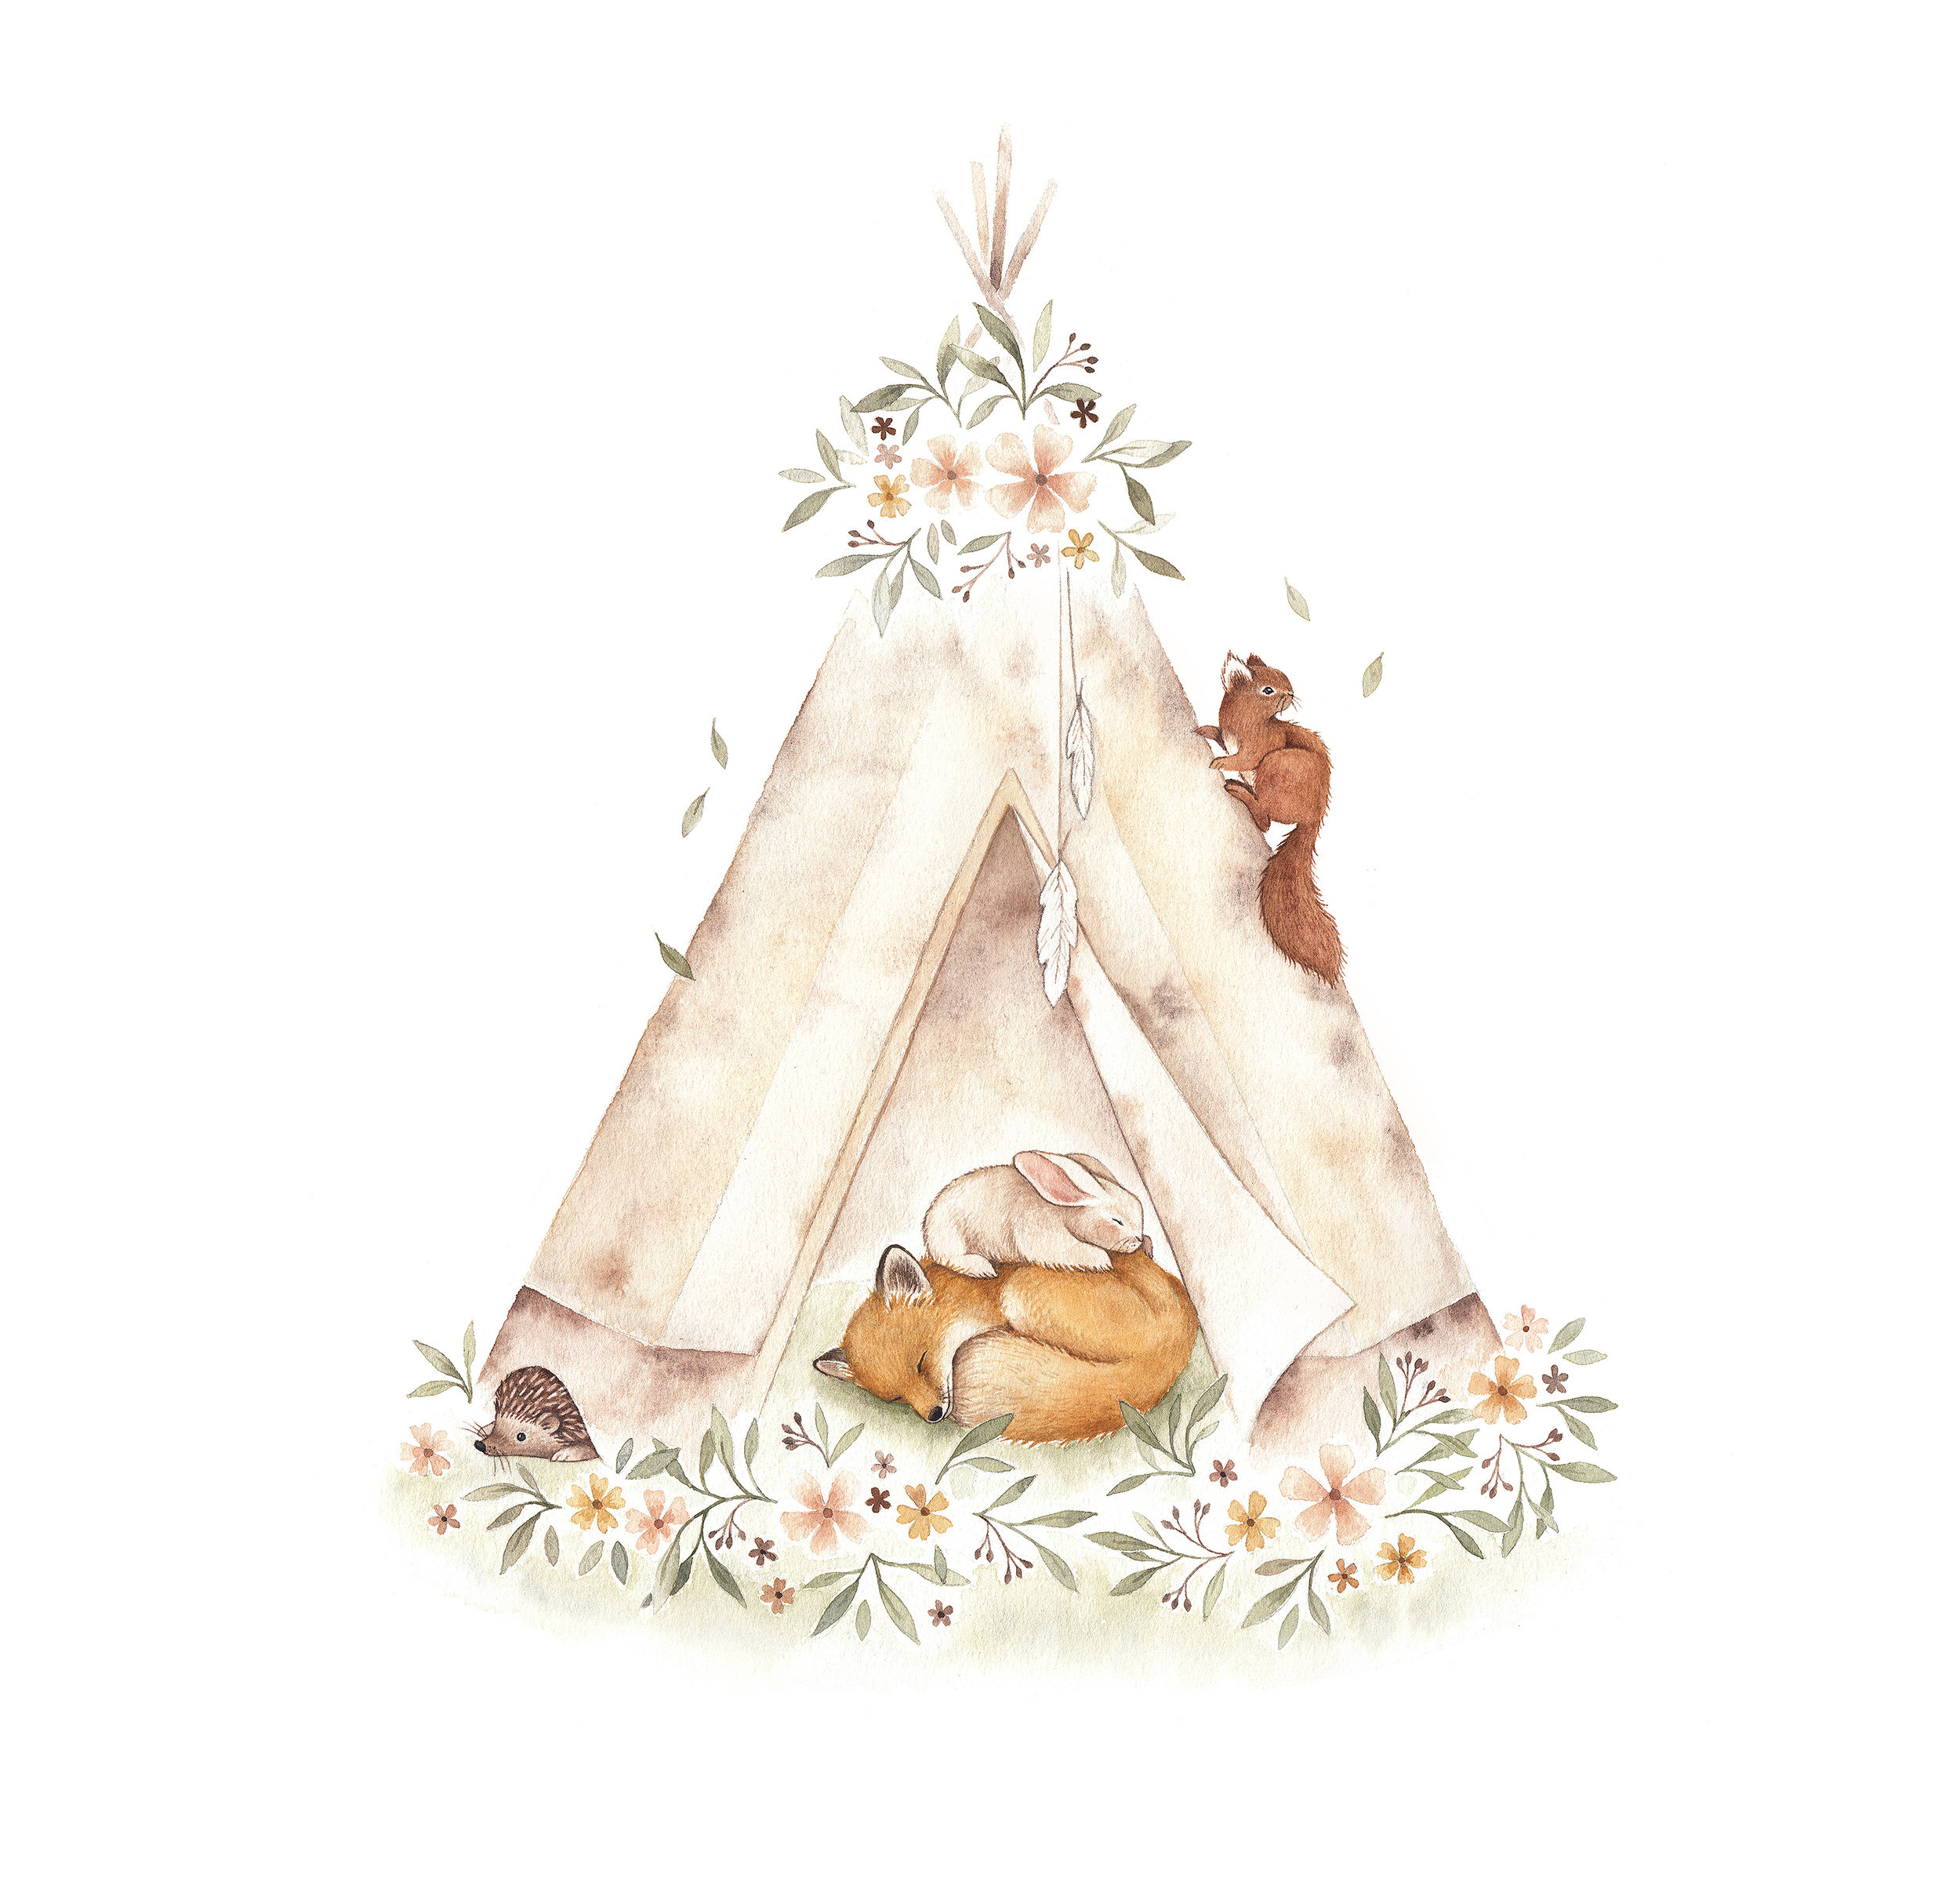 TEEPEE_NEW_FINAL_RGB_SOCIETY6_SMALL_WEB.jpg